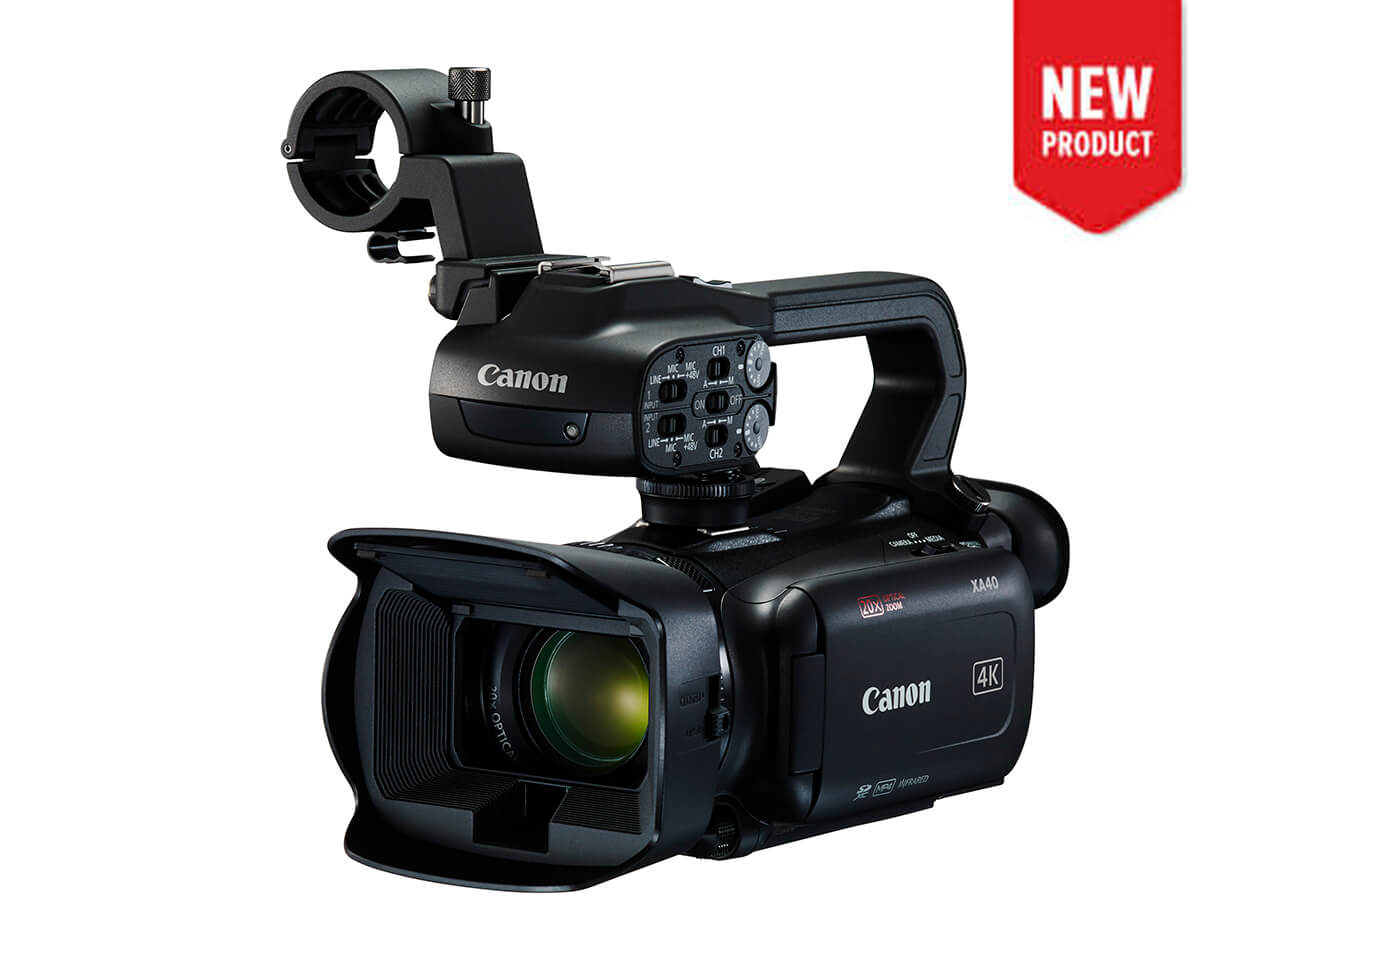 Product image of XA40 video camera